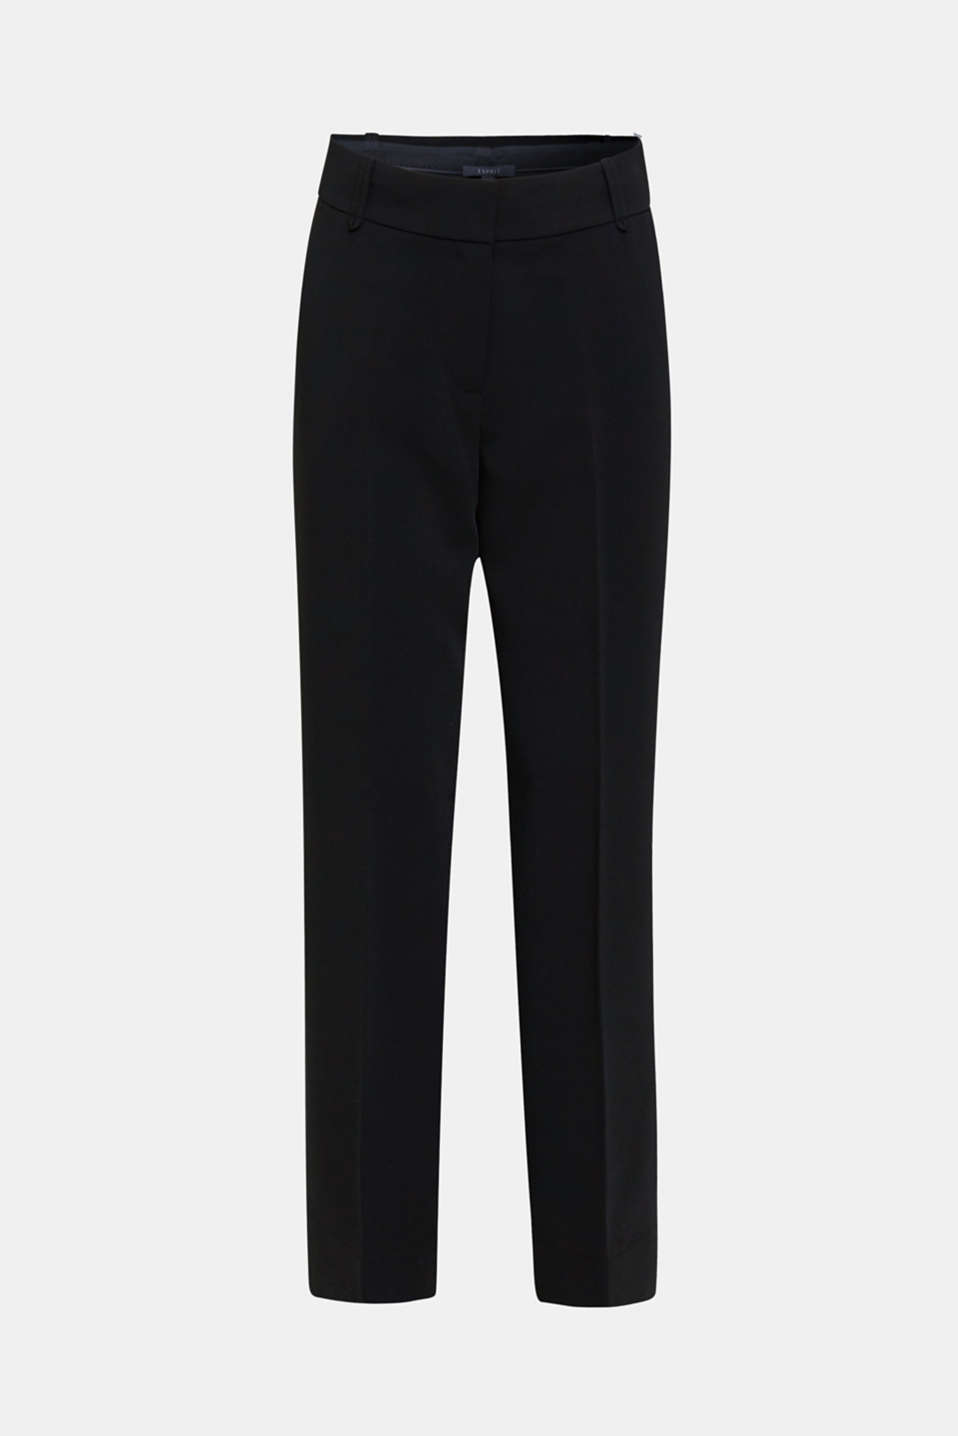 TECHNO TWILL mix + match wide stretch trousers, BLACK, detail image number 7